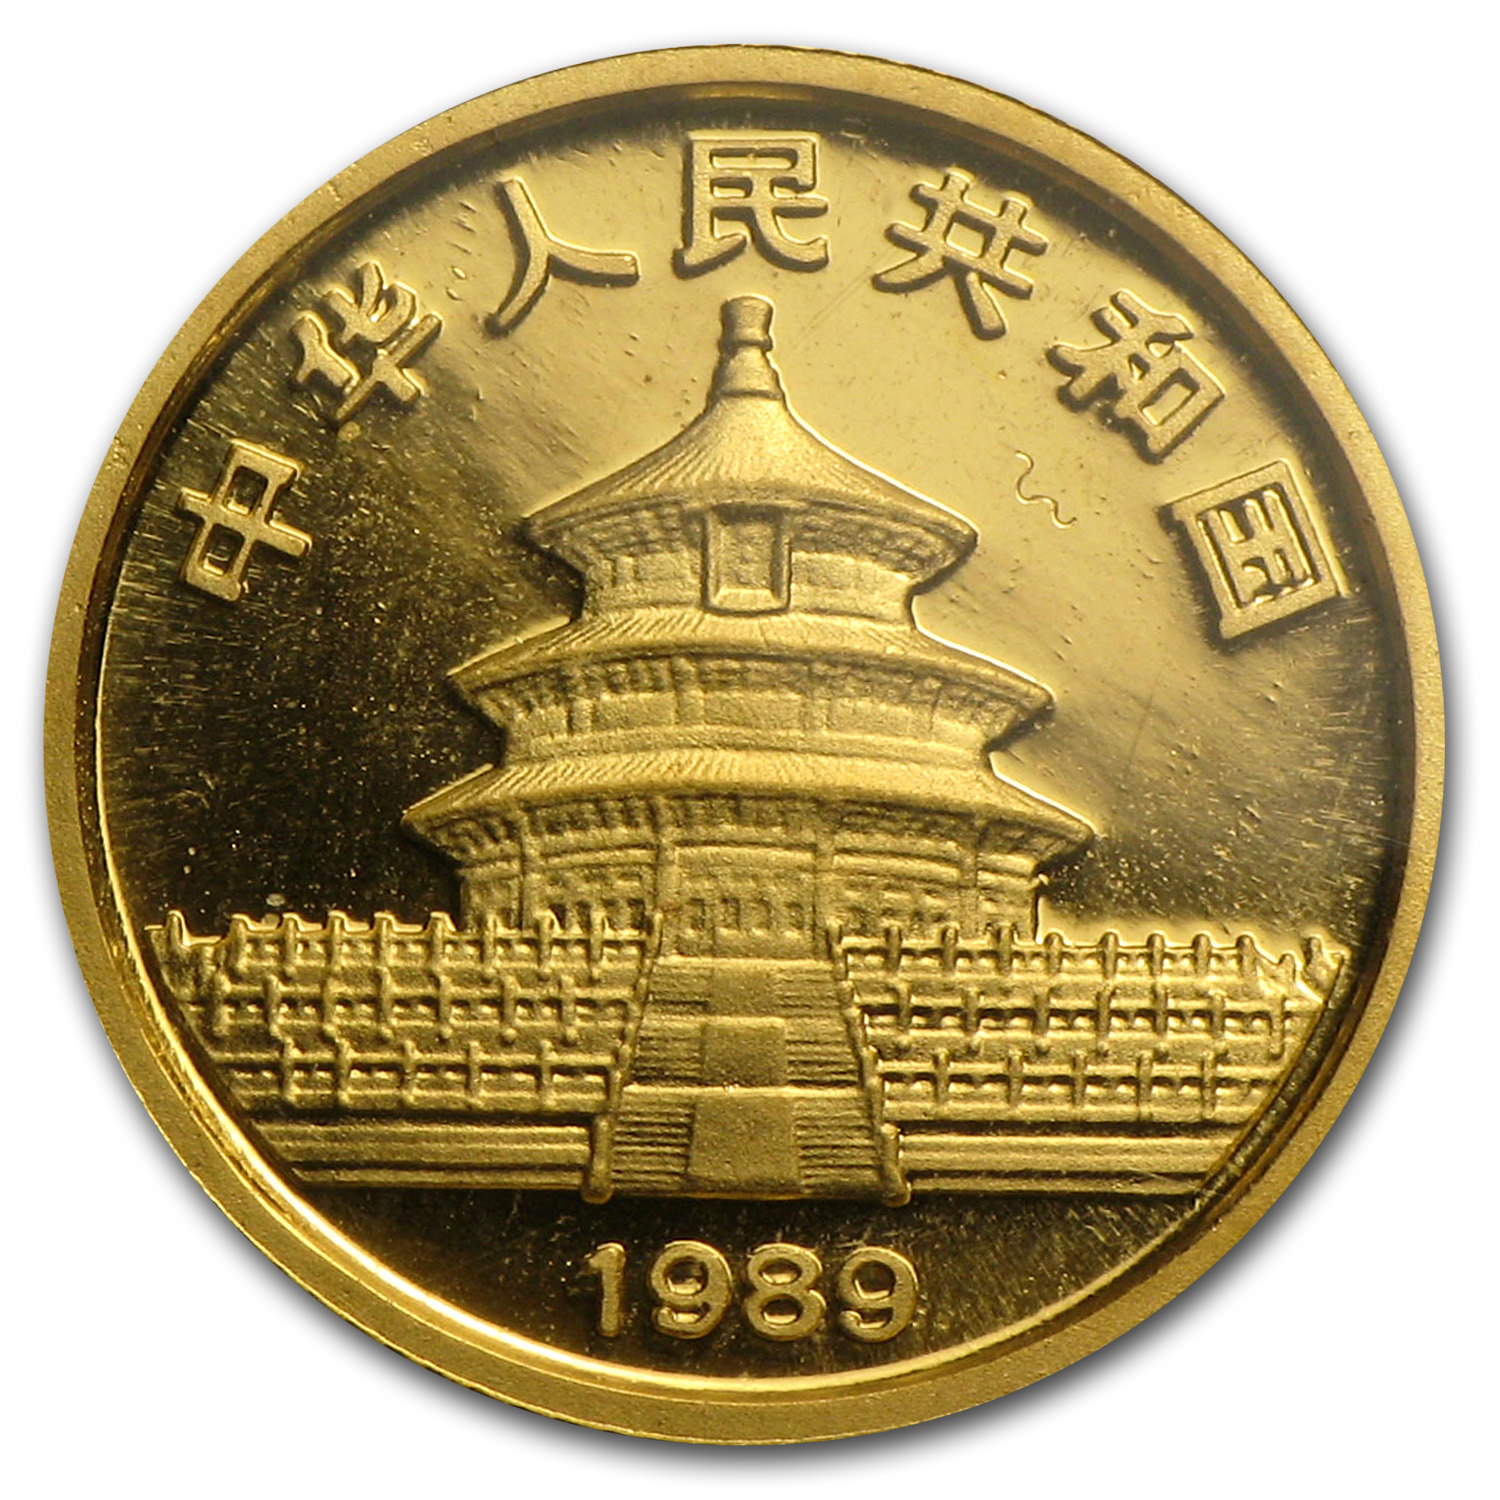 1989 China 1/20 oz Gold Panda Large Date BU (Sealed)